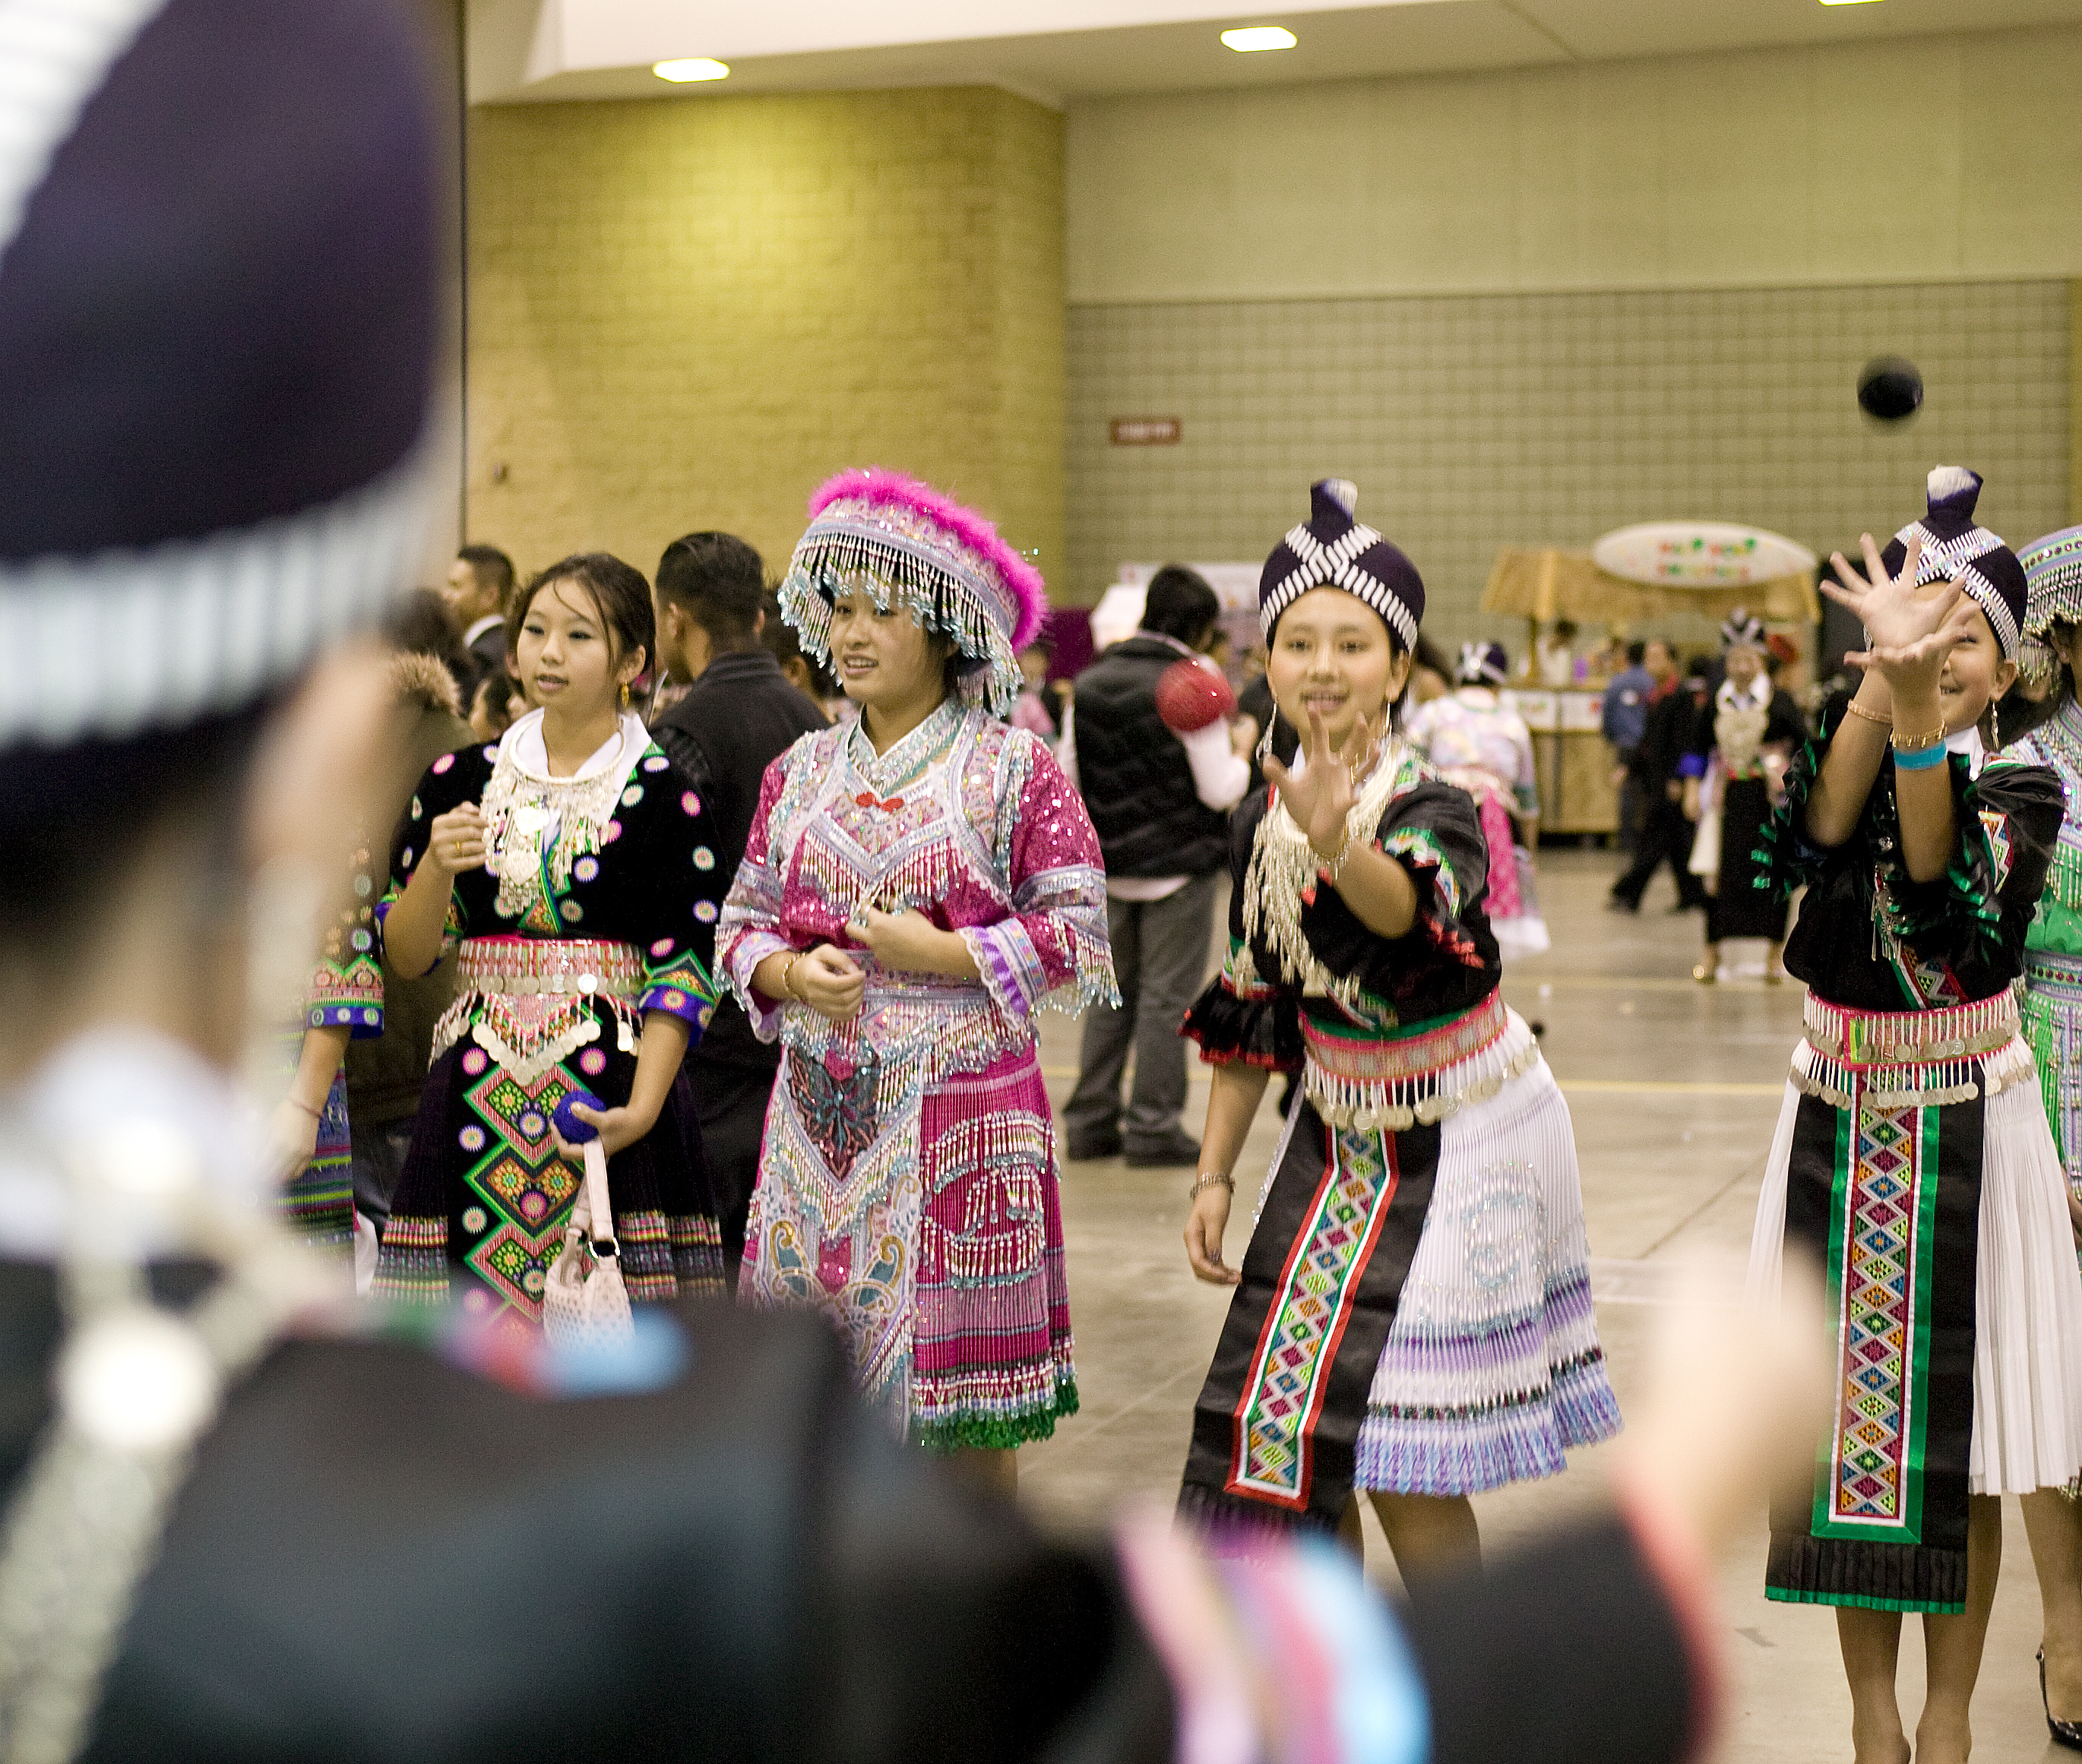 Saint Paul Hmong culture